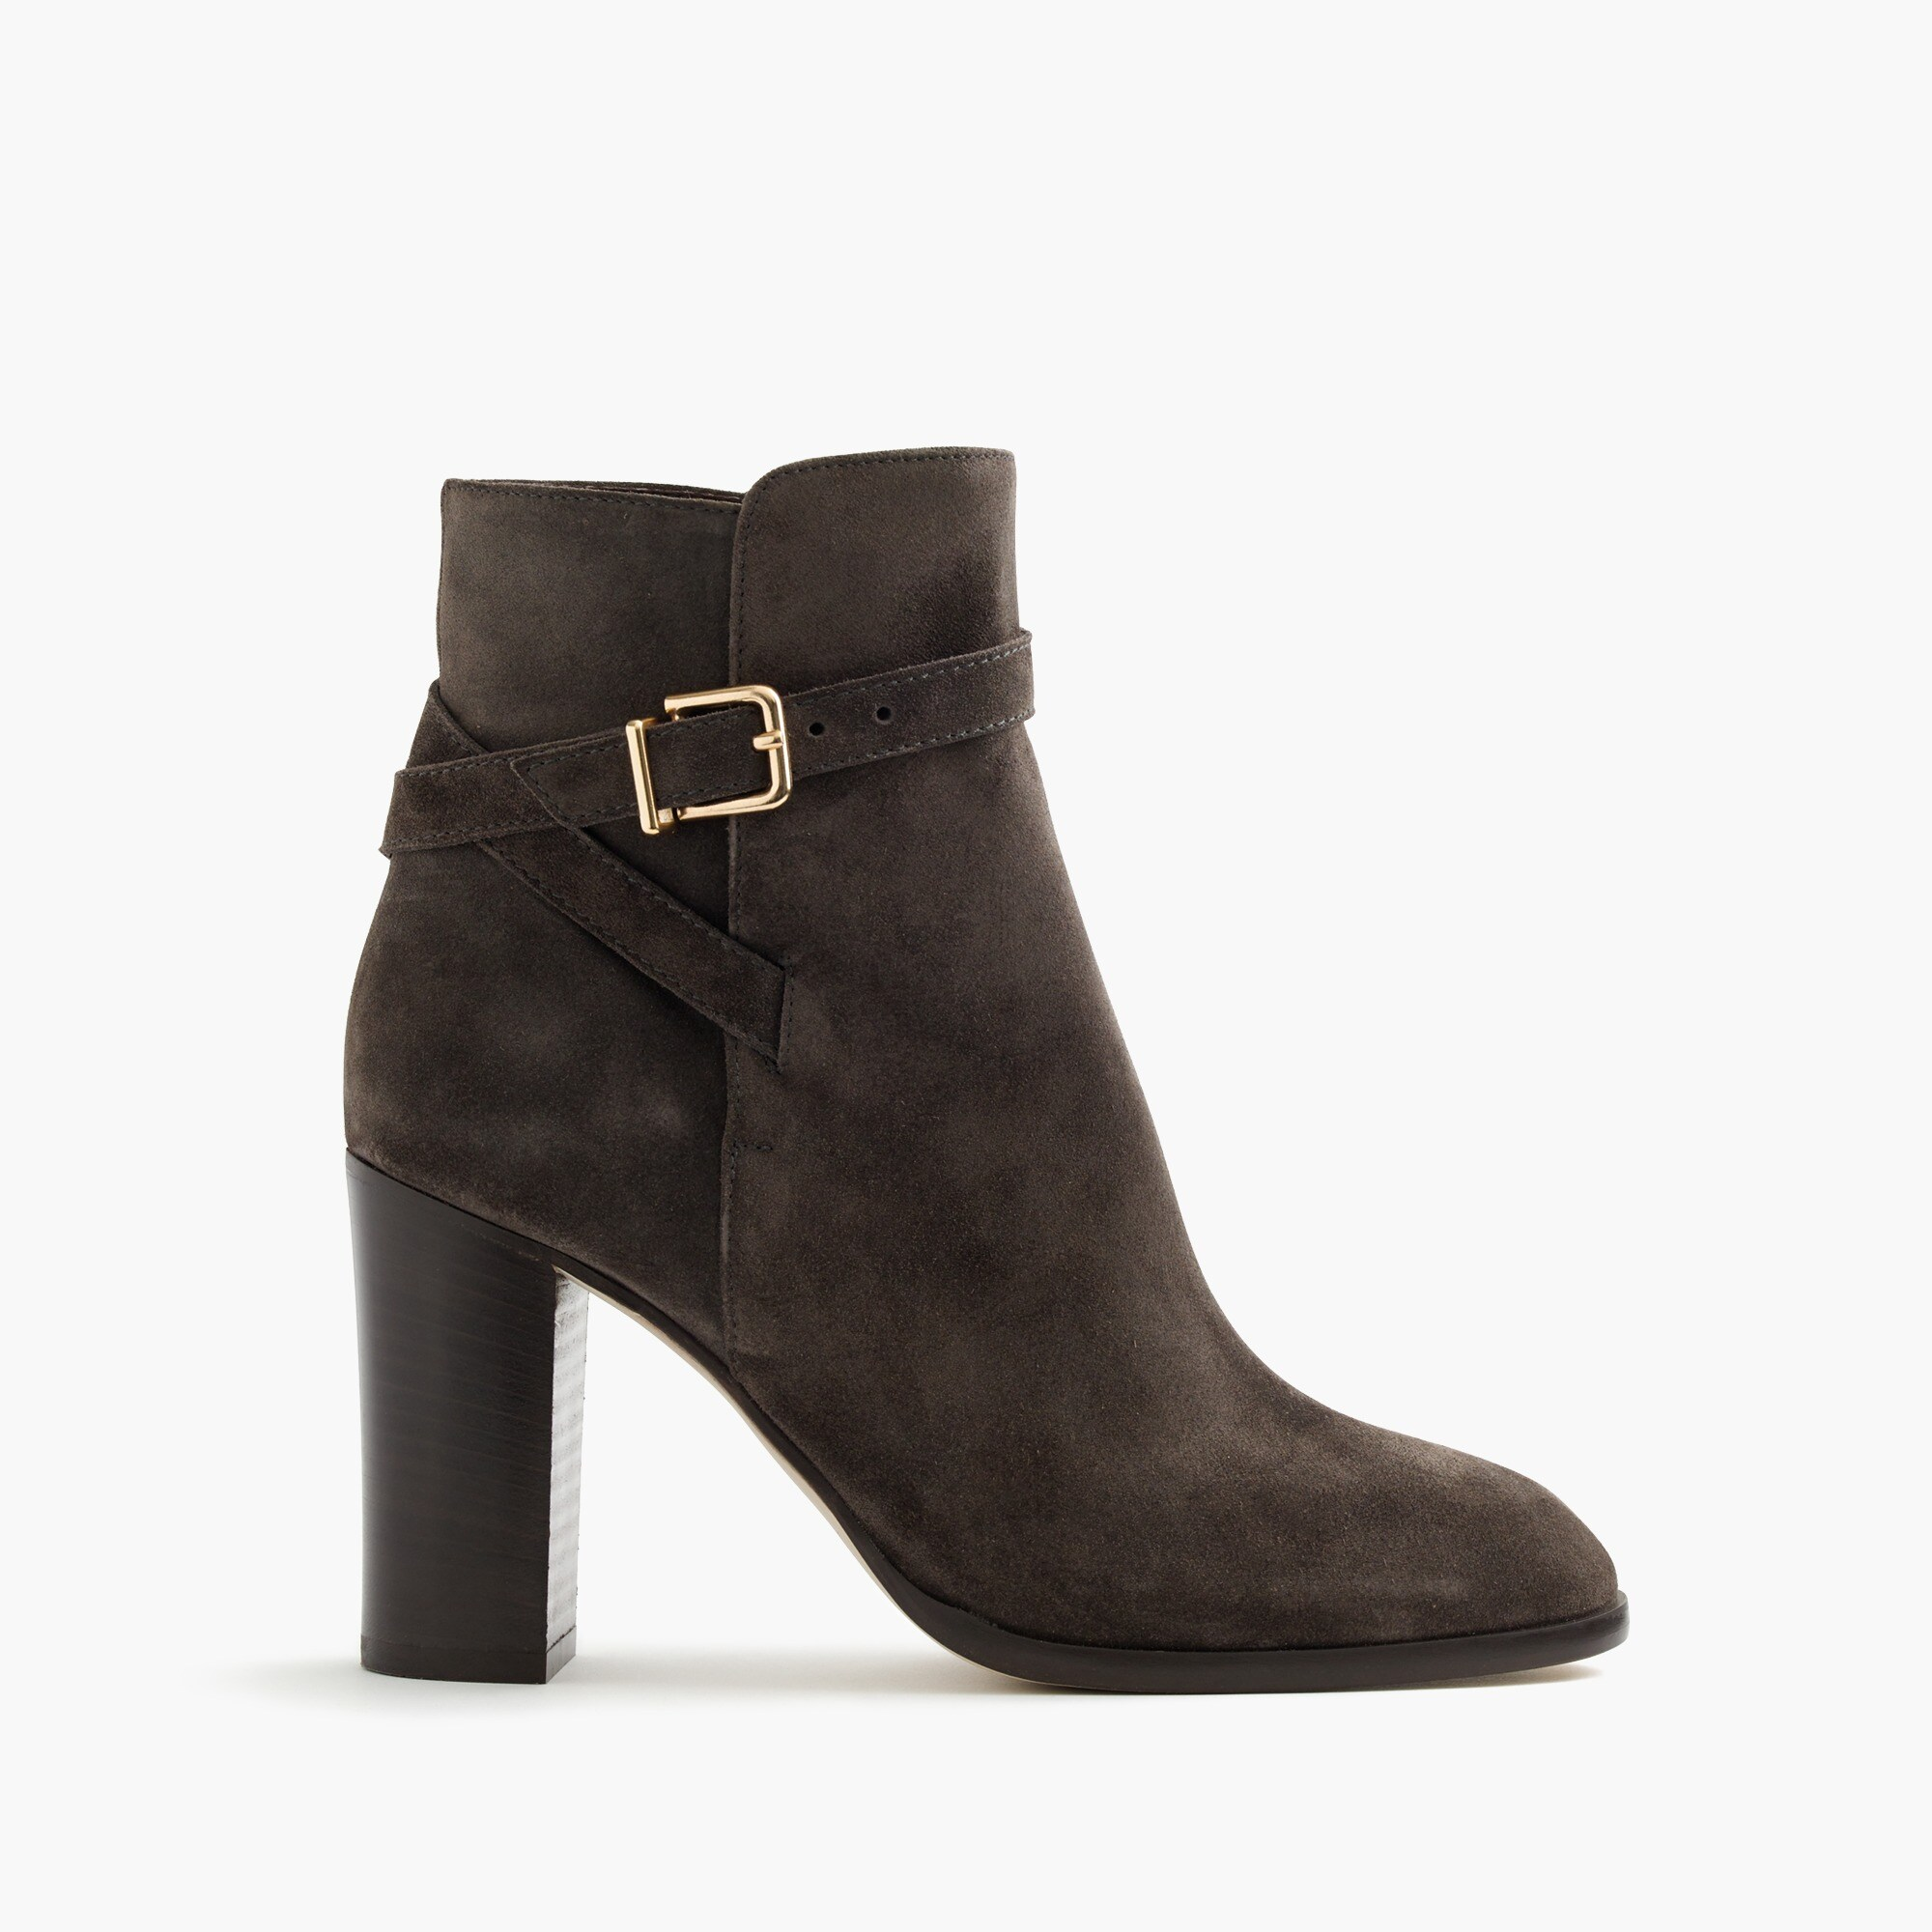 suede ankle boots with wraparound buckle : women's boots